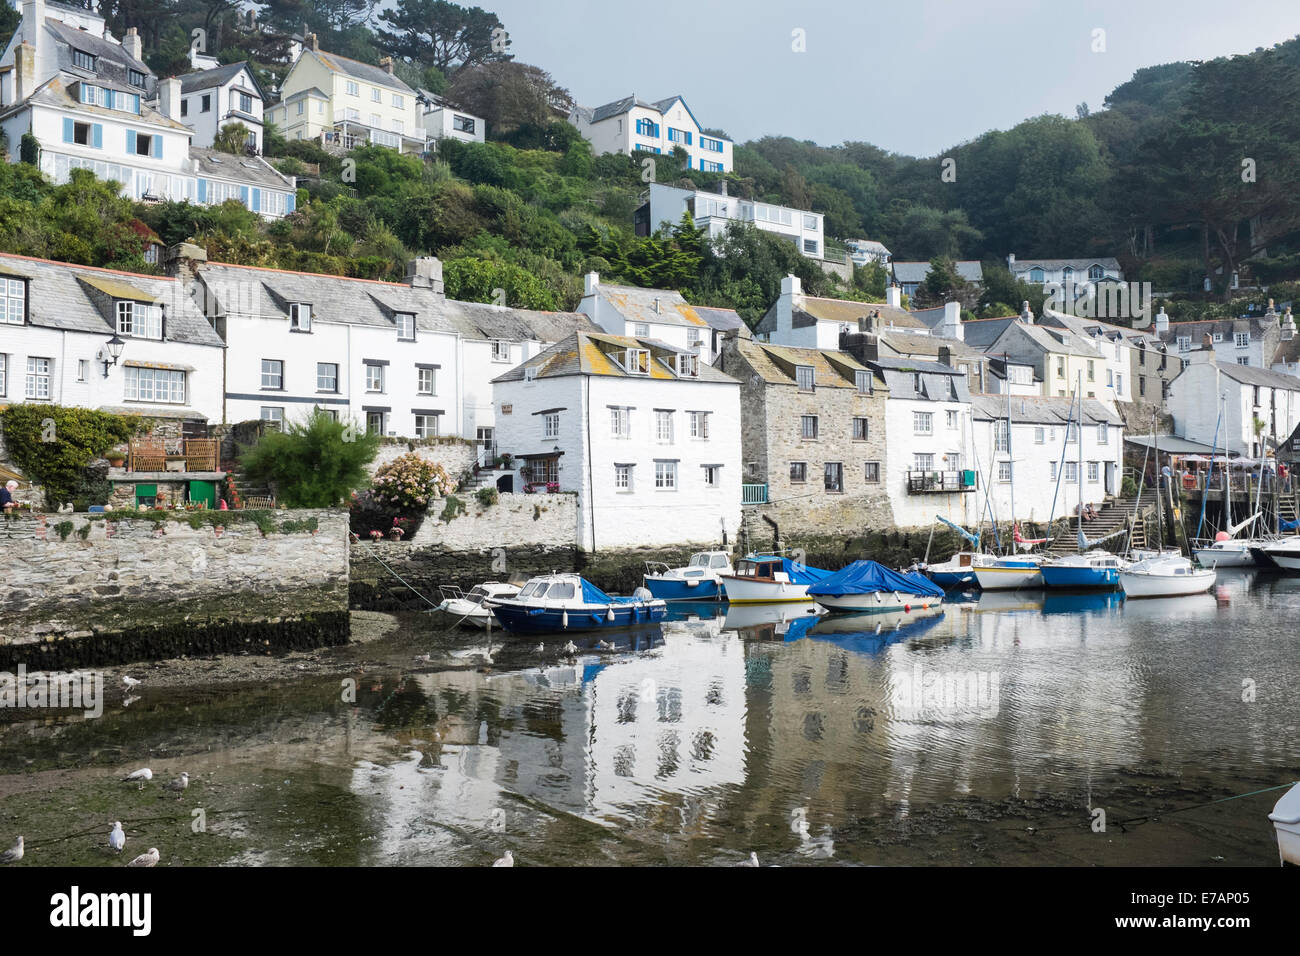 Fishermen's houses and boats in the historic fishing village of Polperro, Cornwall Stock Photo